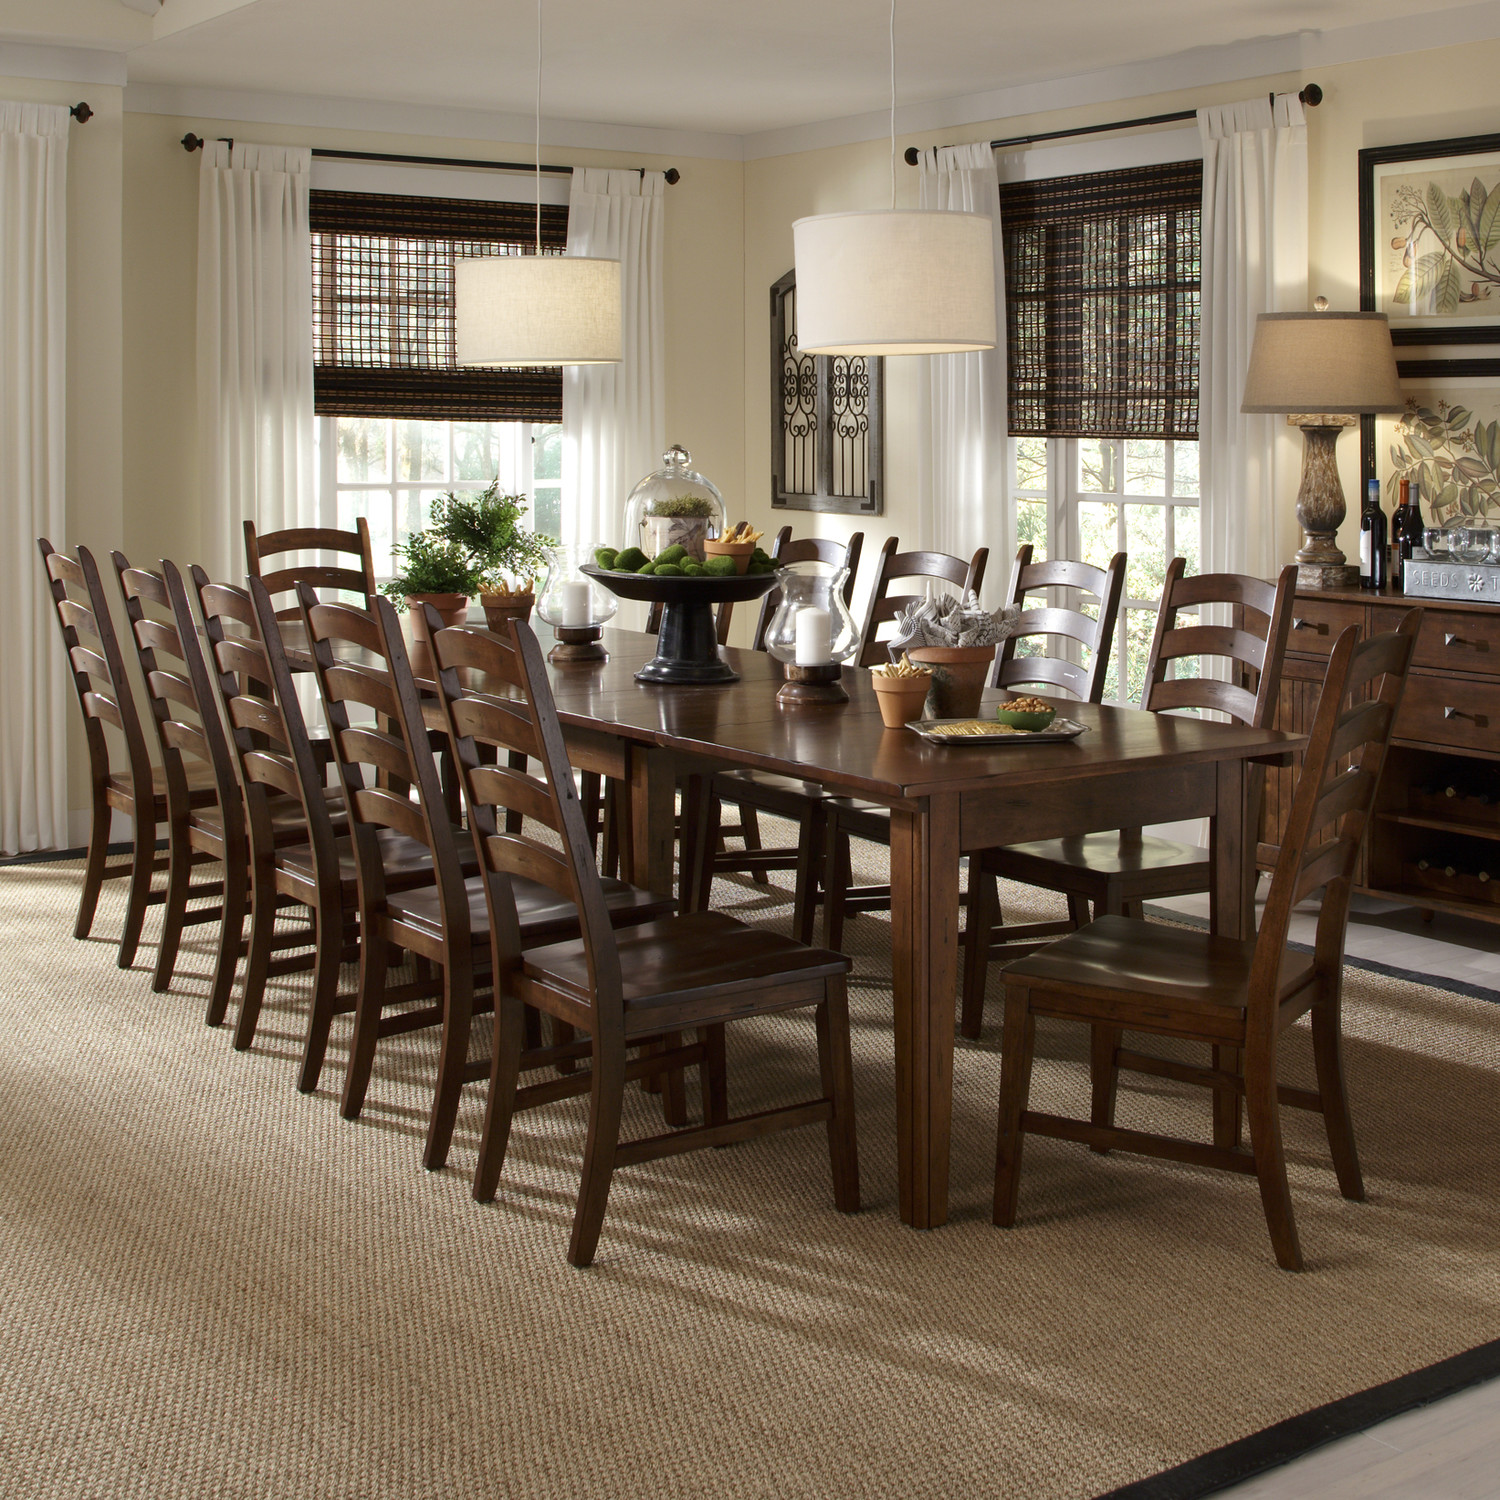 Dining Room Makeover Tips for Formal Dining Room Sets